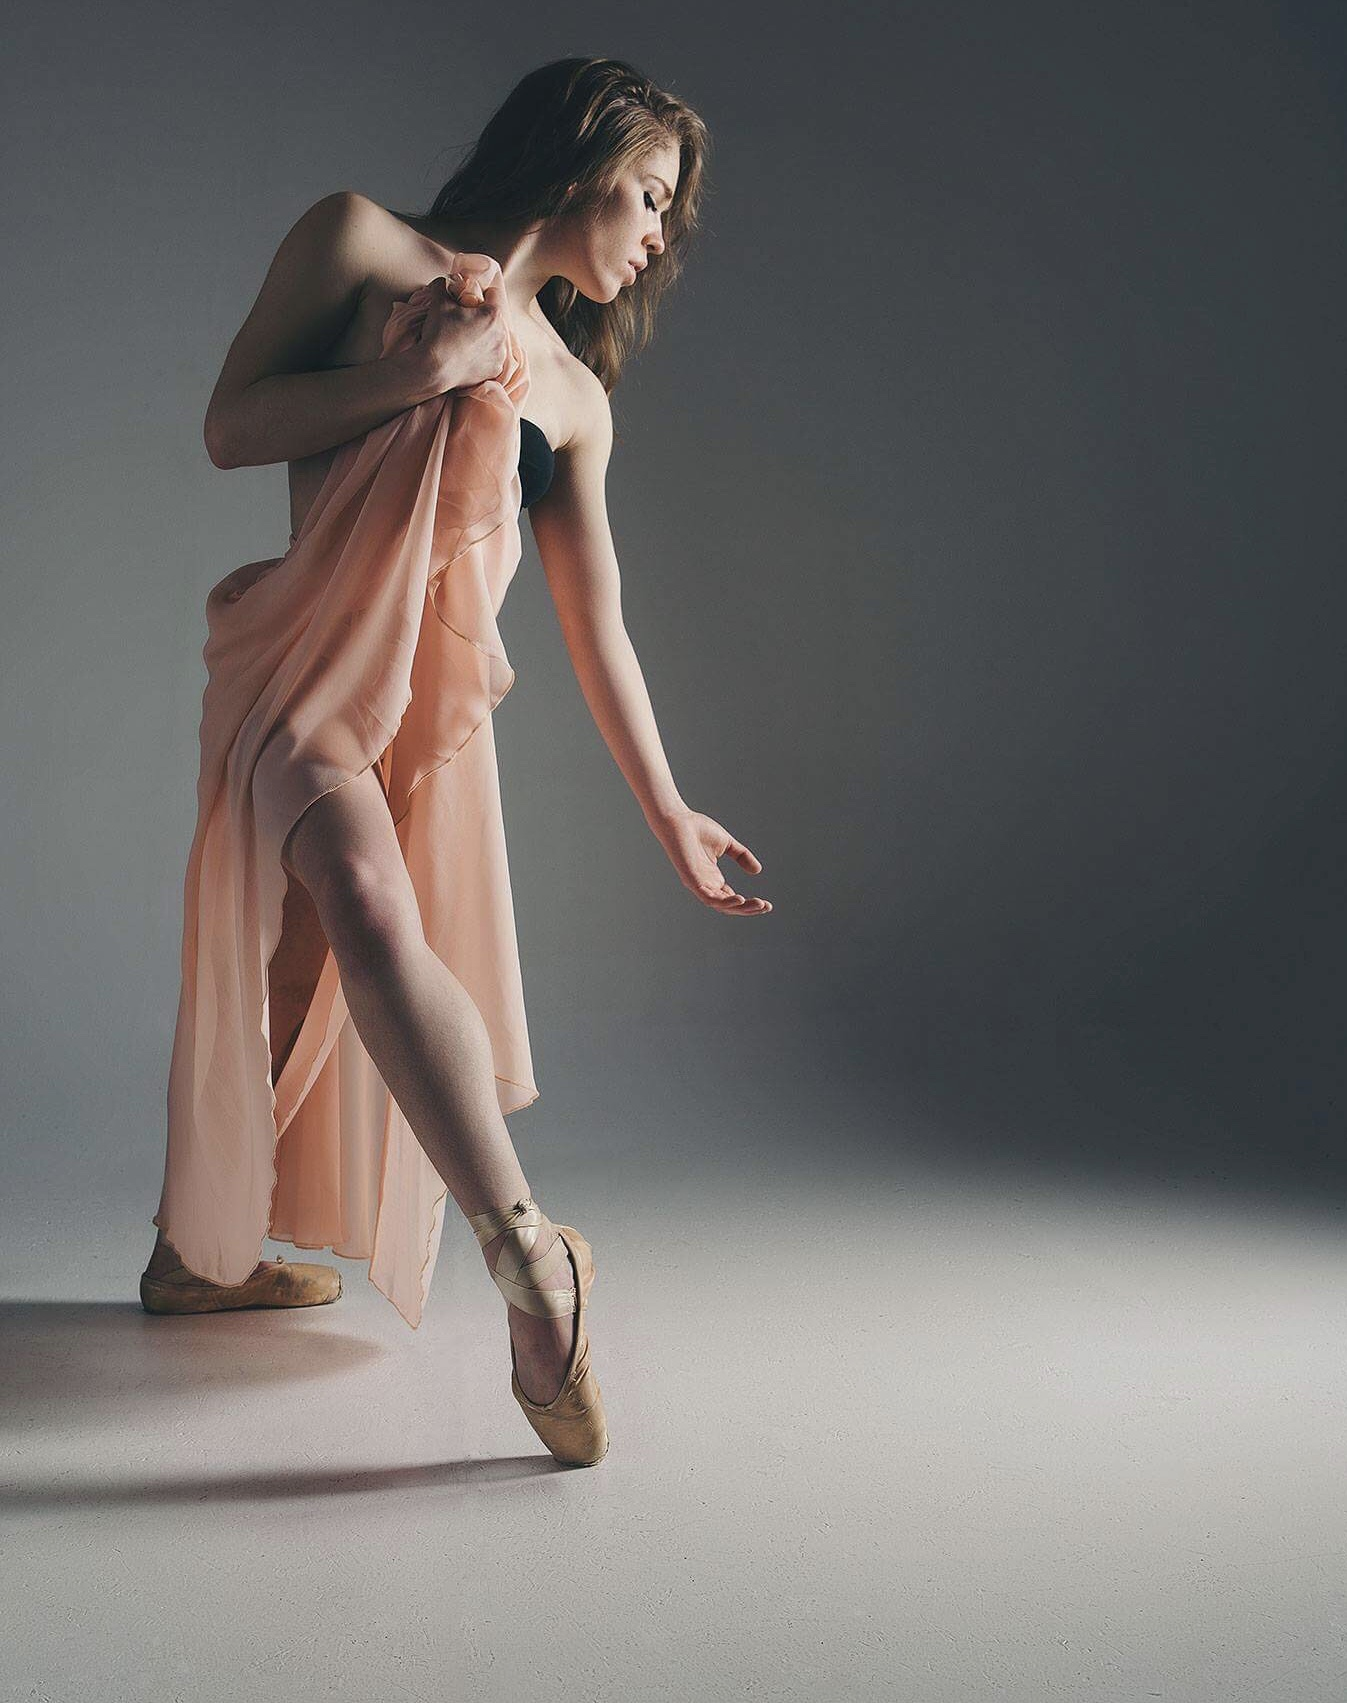 Ballet Photography Workshop, photo by Bravo Mike